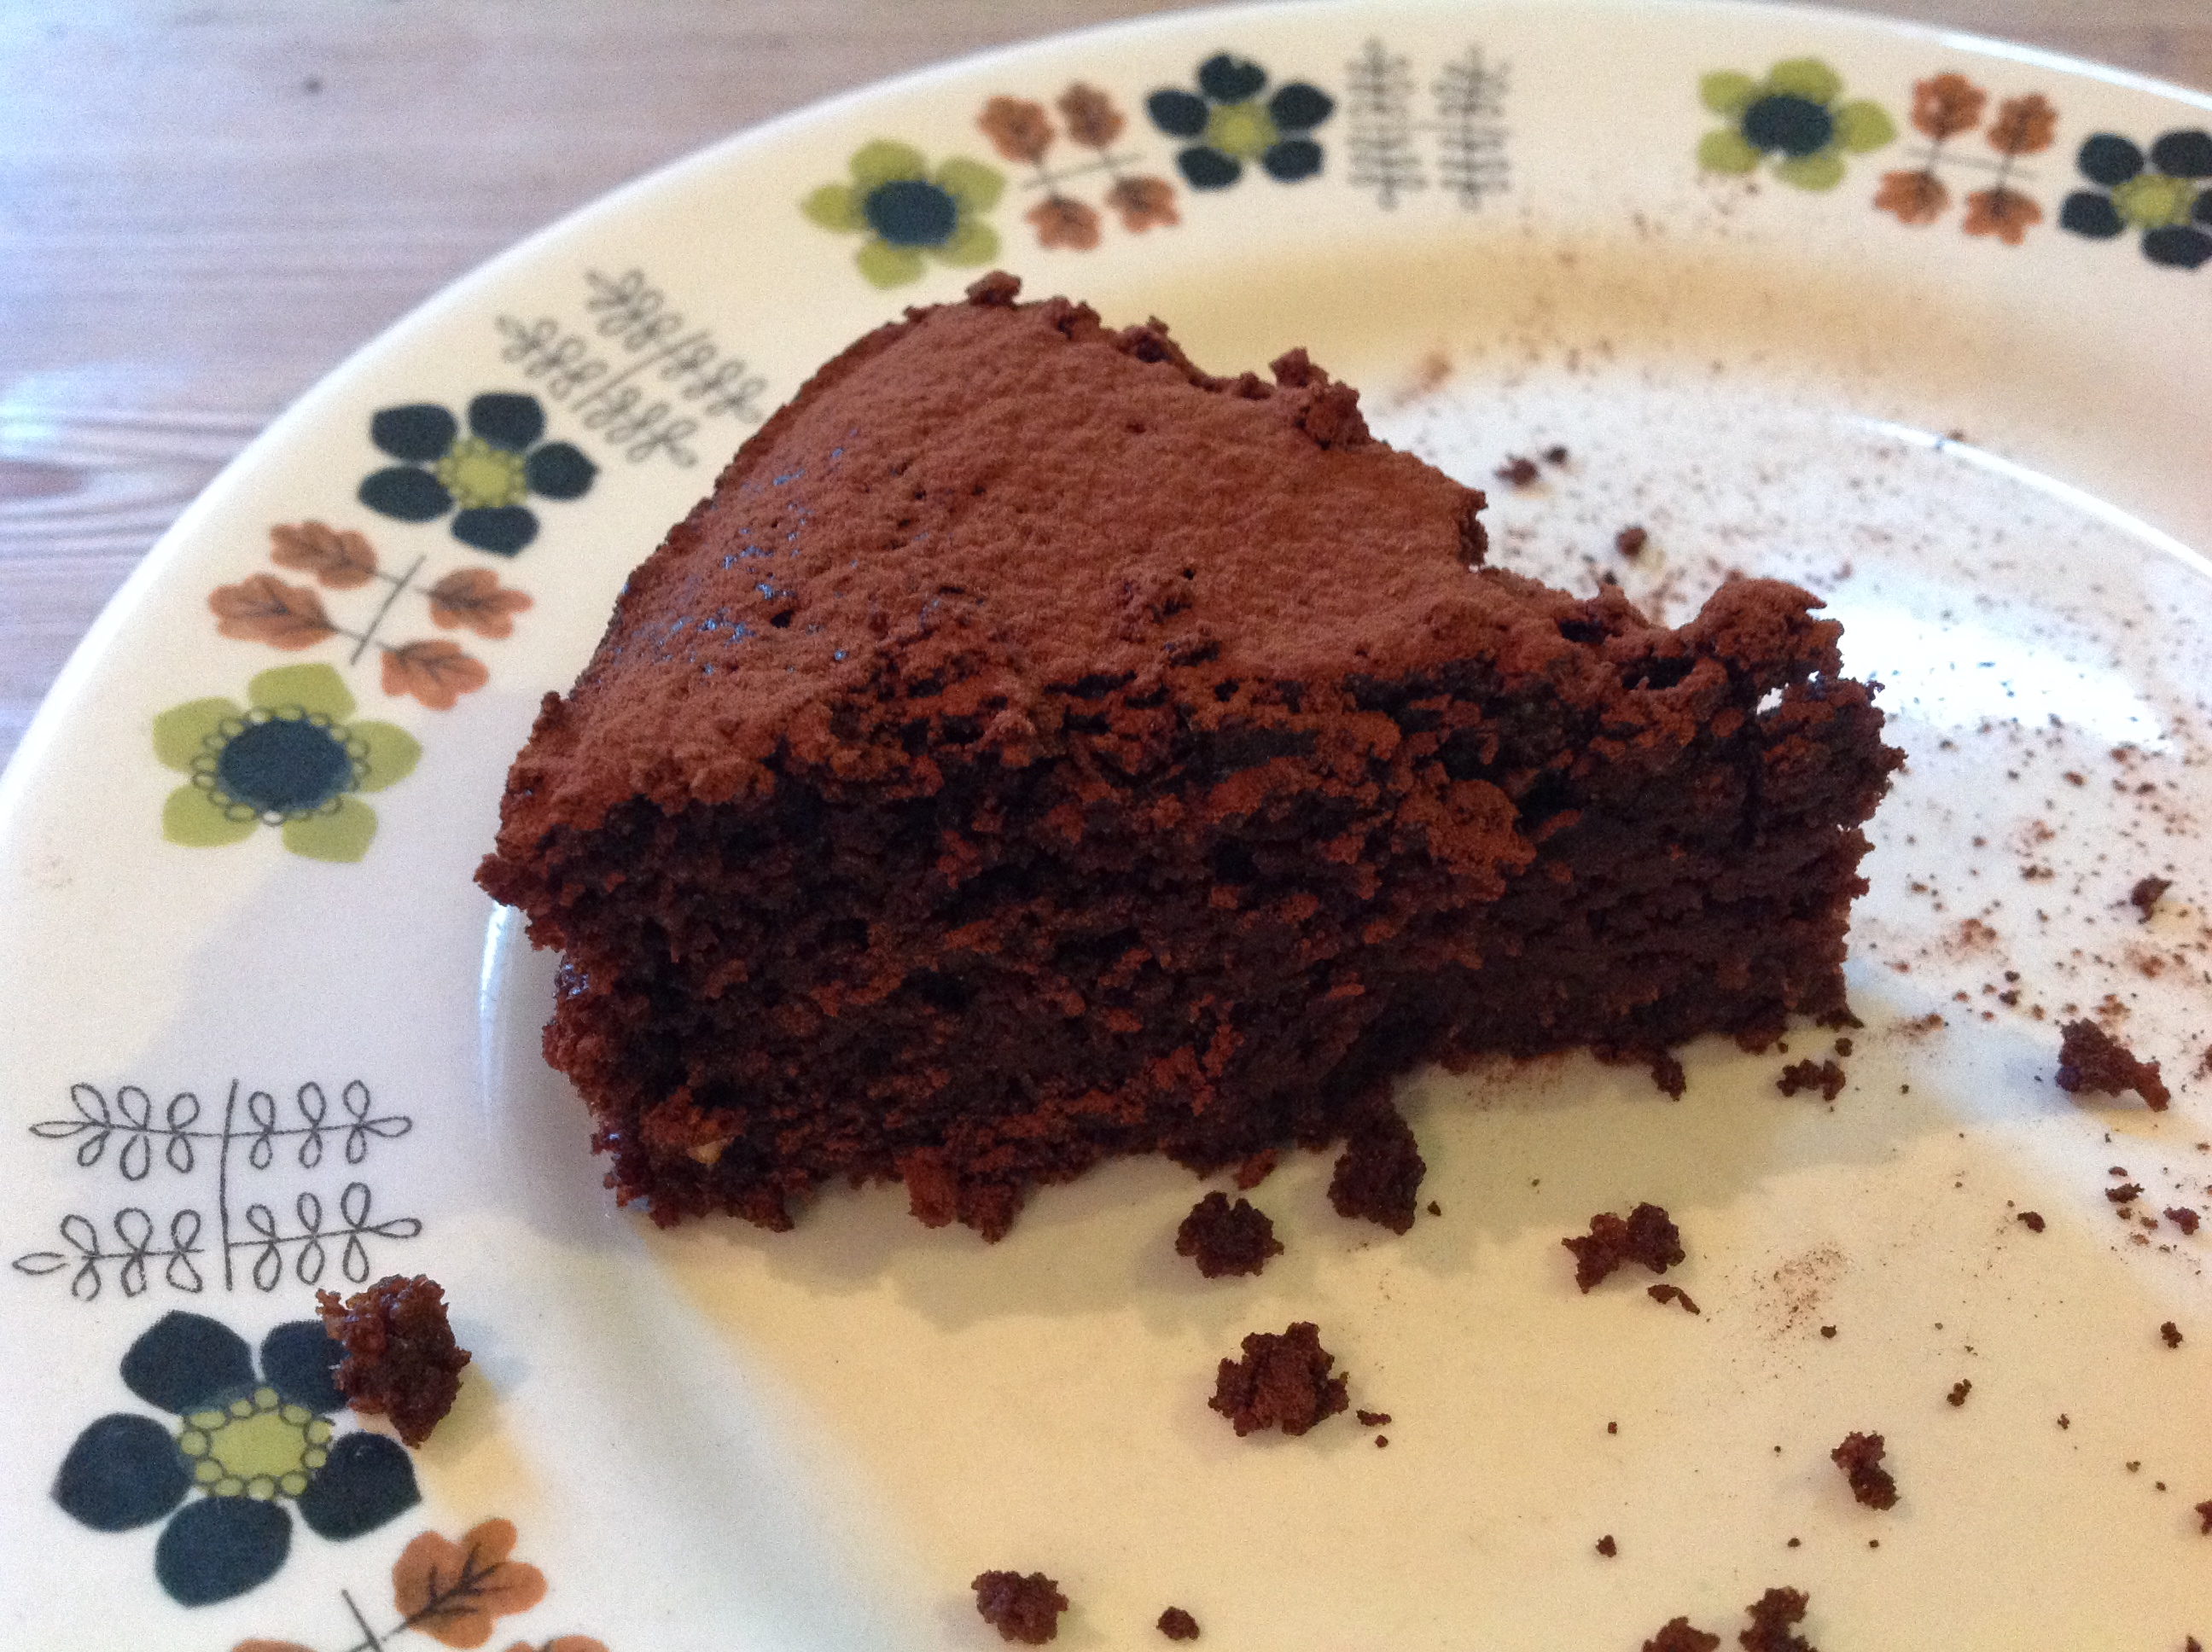 Chocolate Cake (Vegan)